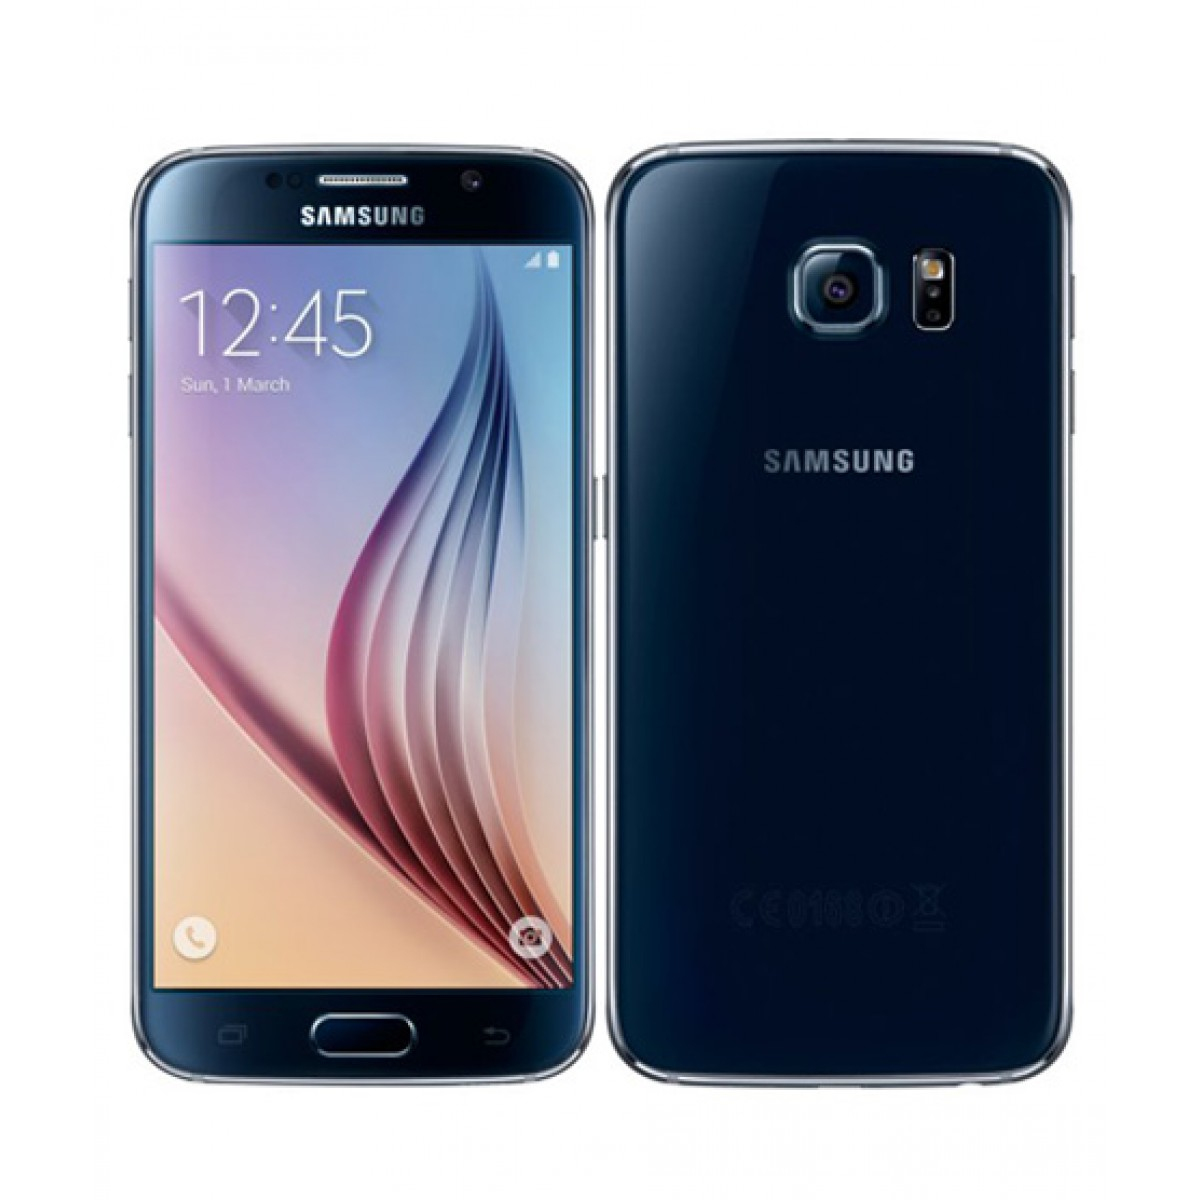 Samsung Galaxy S6 32GB Price in Pakistan | Buy Samsung ...